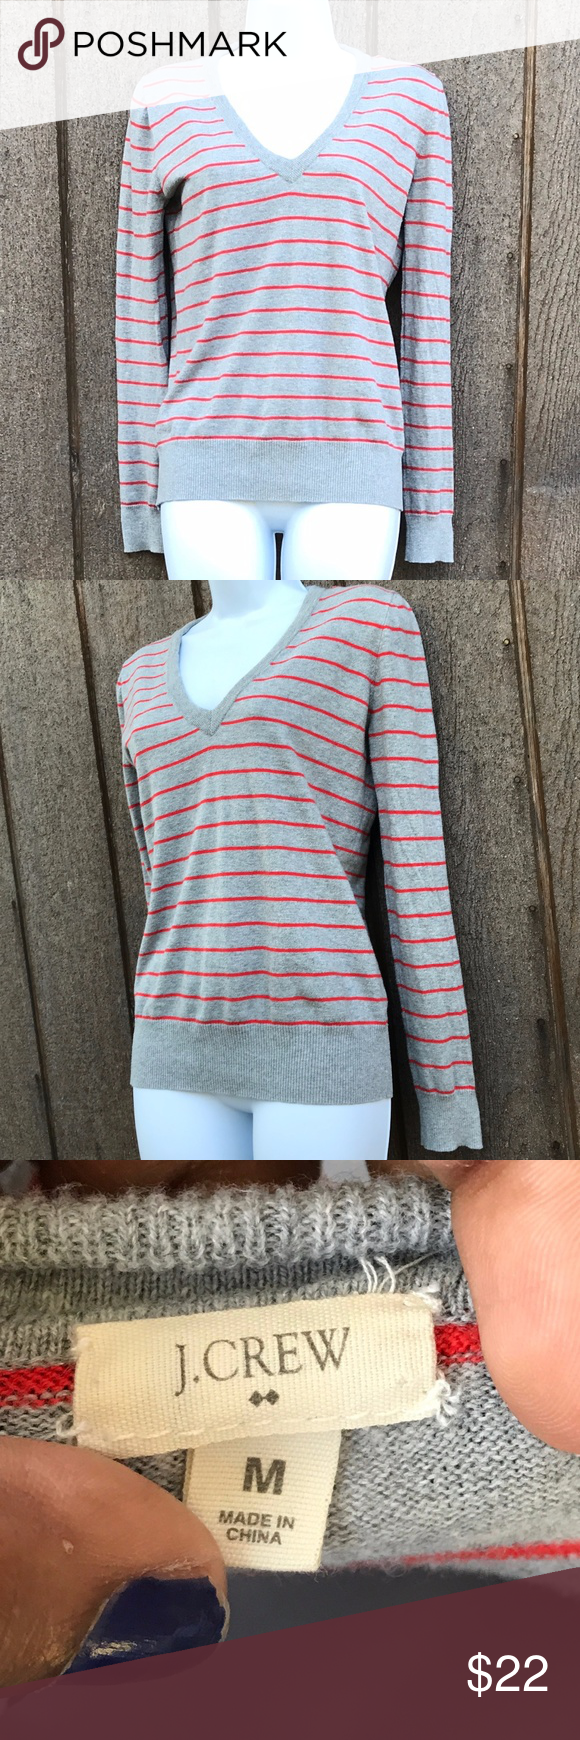 CUTE AND SIMPLE J CREW SWEATER cute orange and gray simple striped ...